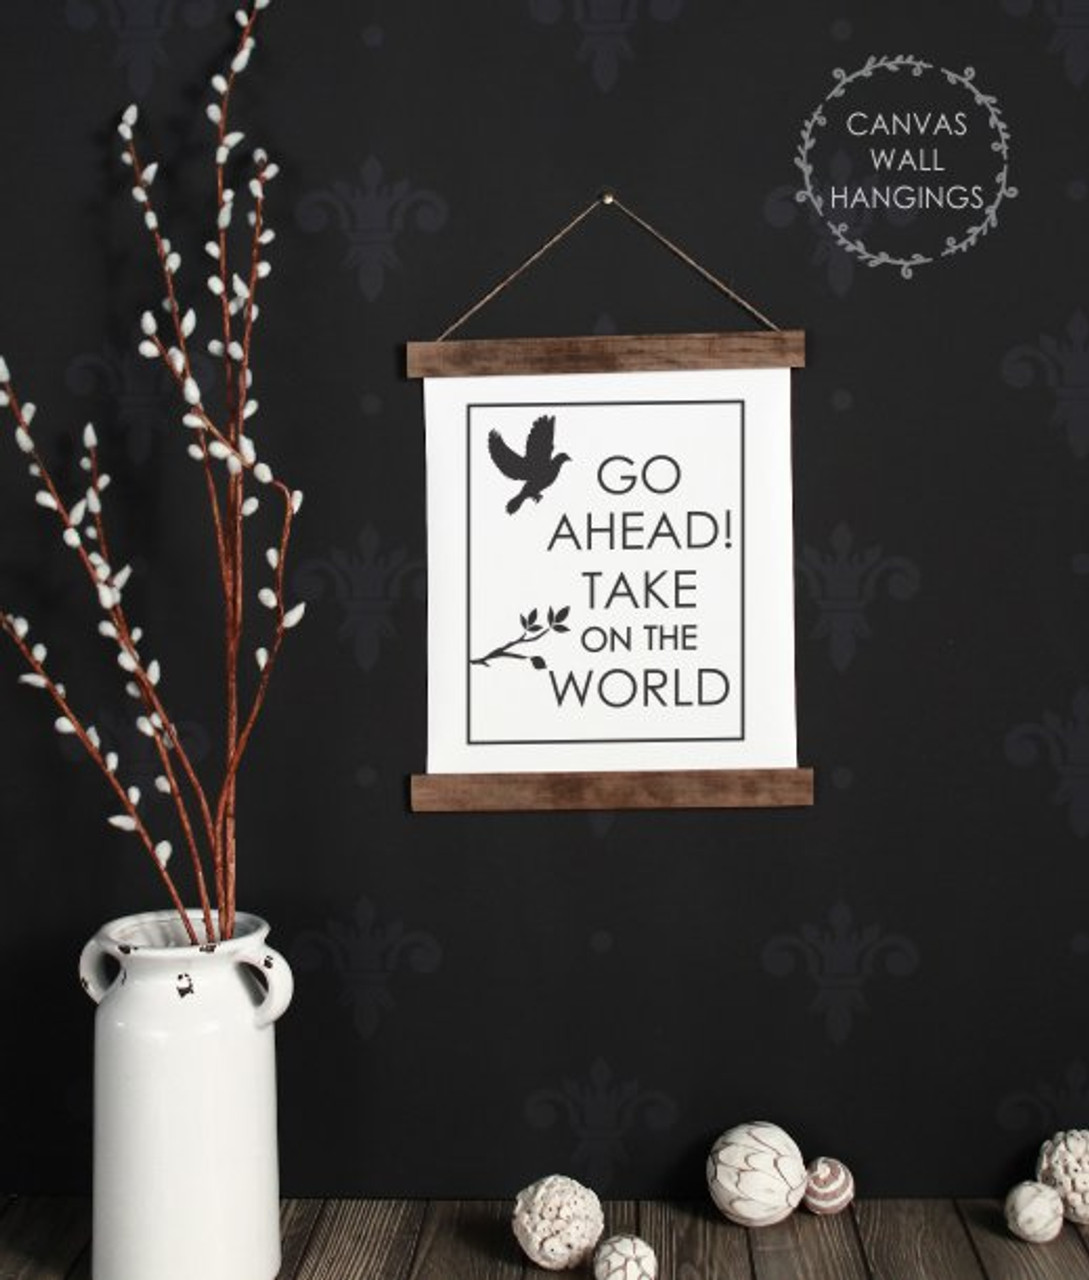 Wood Canvas Wall Hanging Baby Nursery Wall Art Take On The World